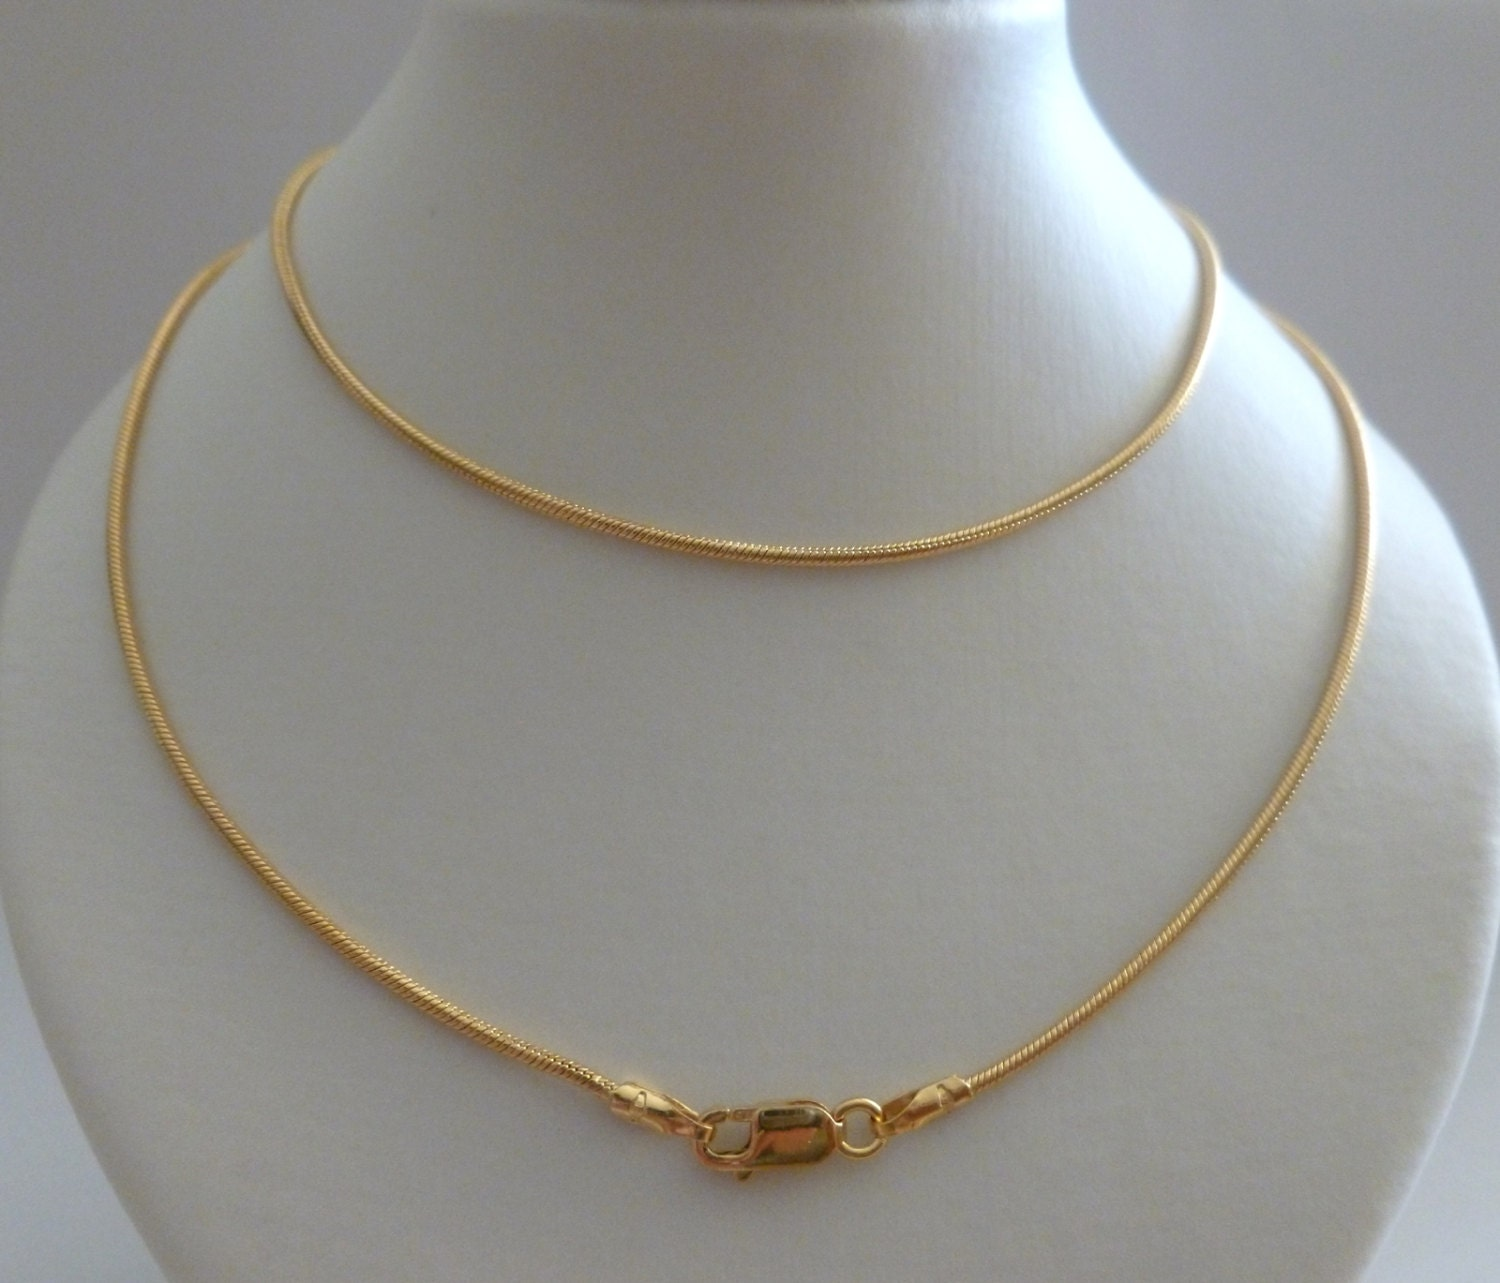 9ct solid yellow gold snake fine chain necklace 50cms 20 zoom aloadofball Gallery